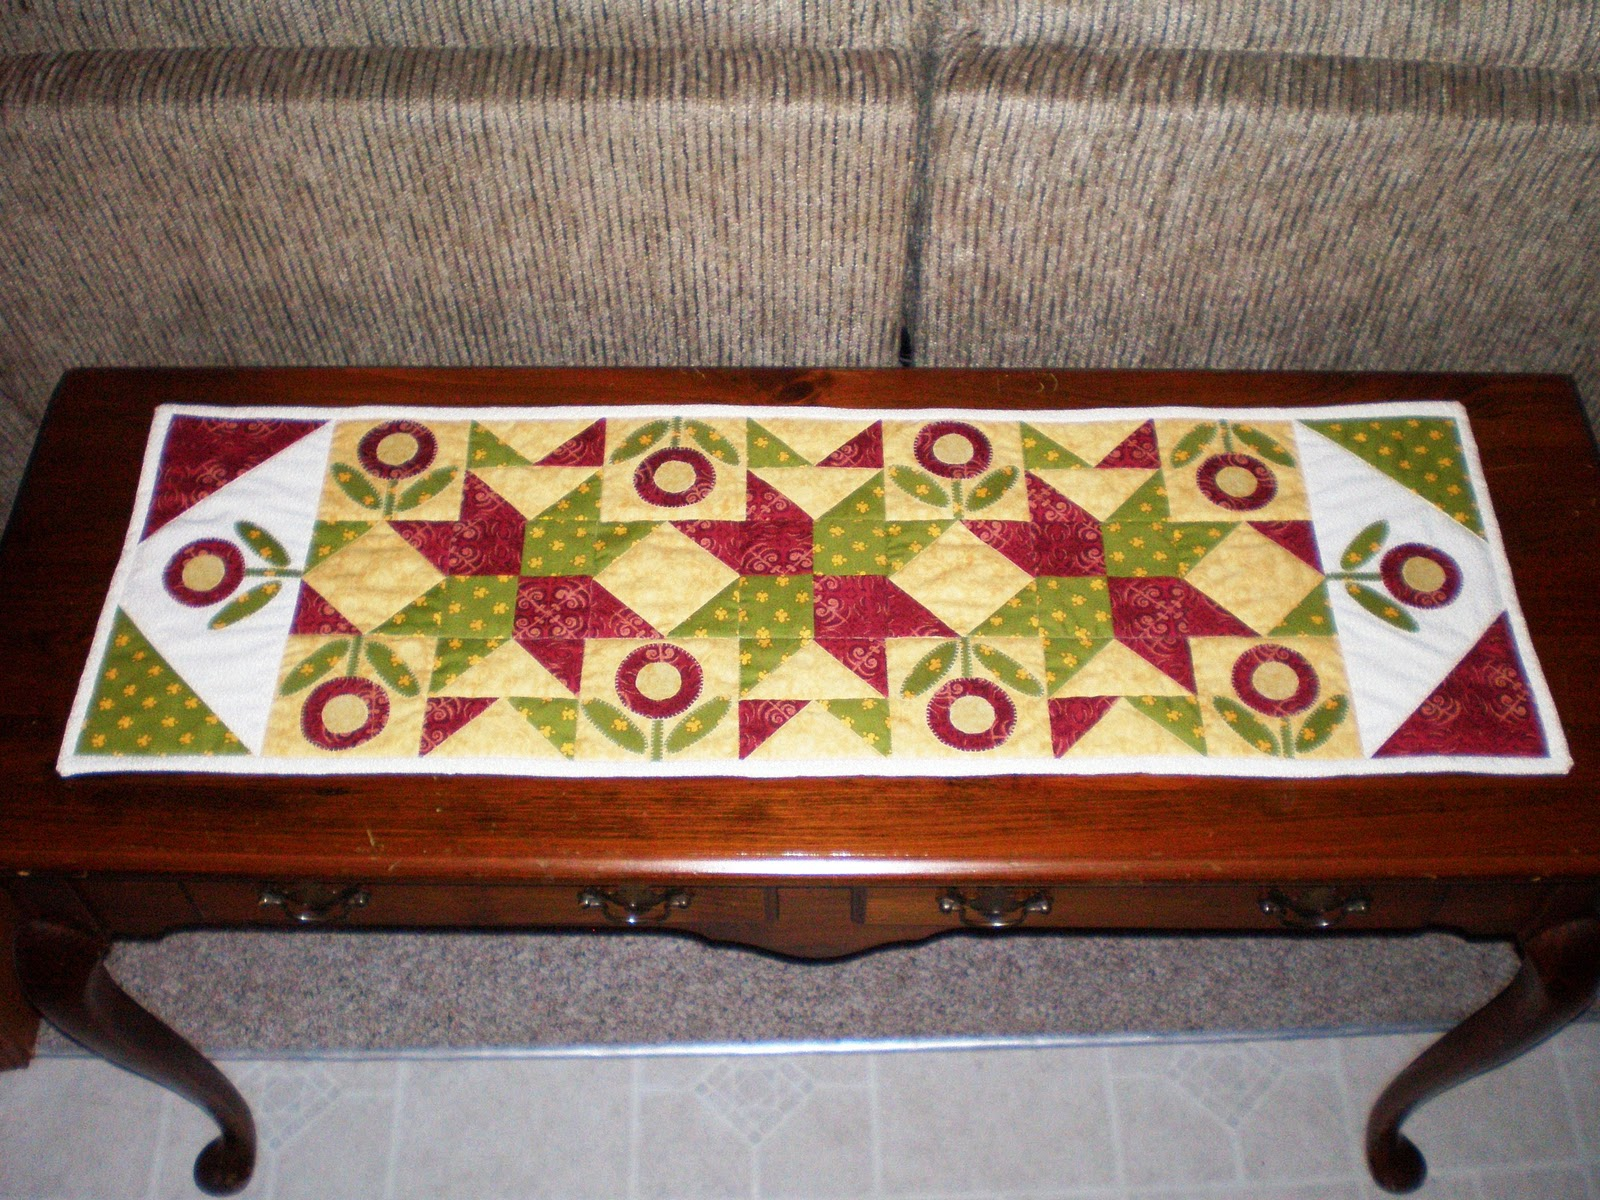 Sofa Table Runners Jack Knife Frame My Useless Crafts And Such Runner